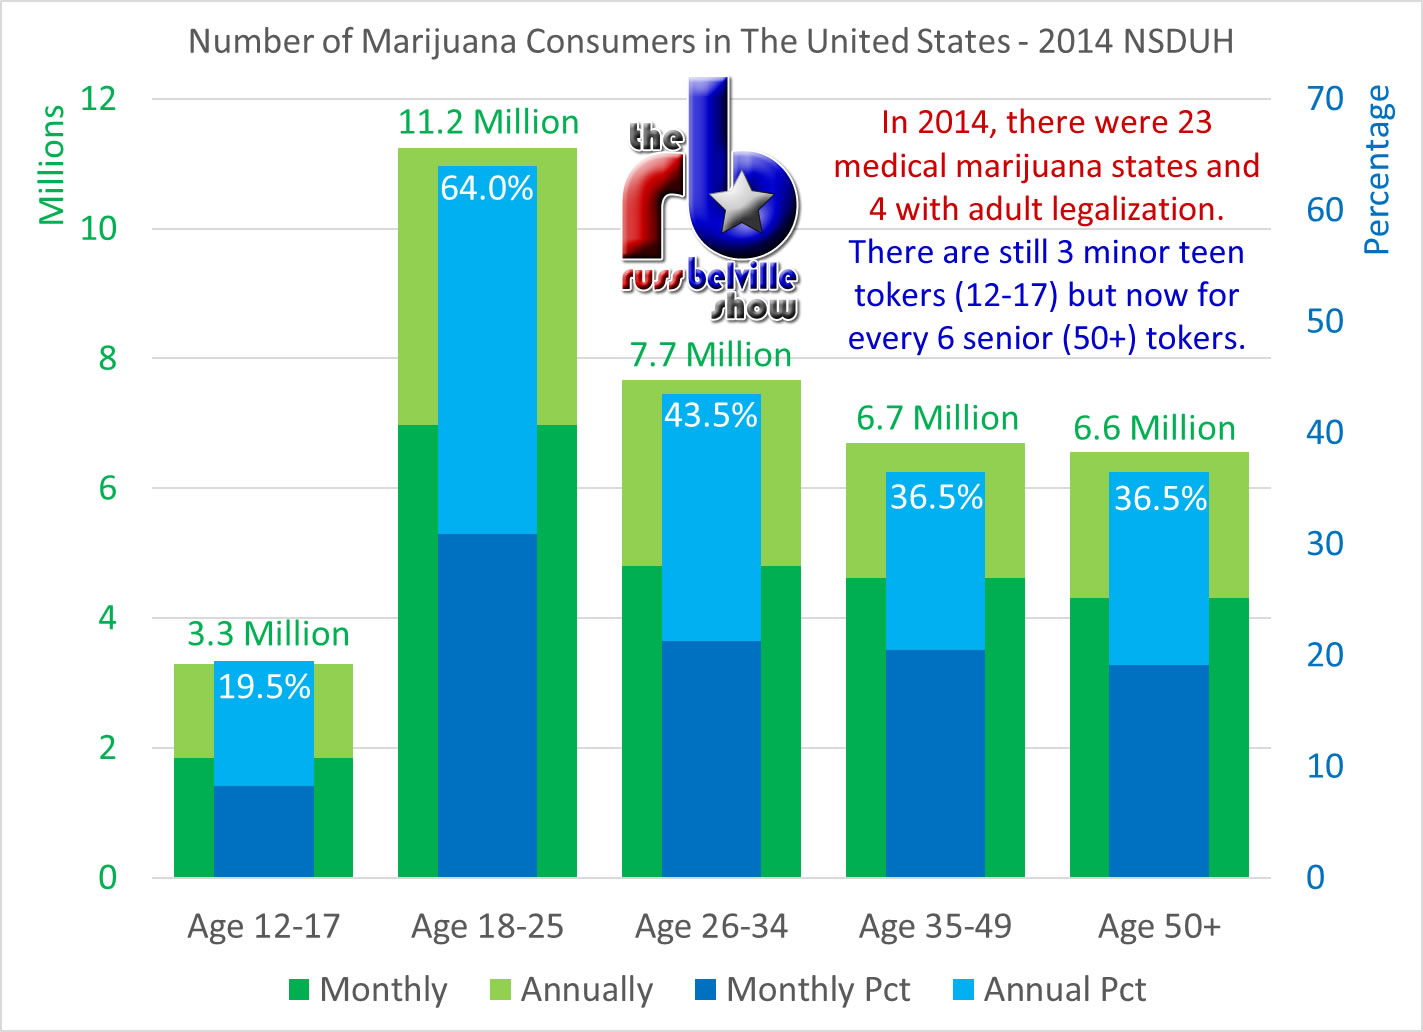 NSDUH Age Breakdown 2014